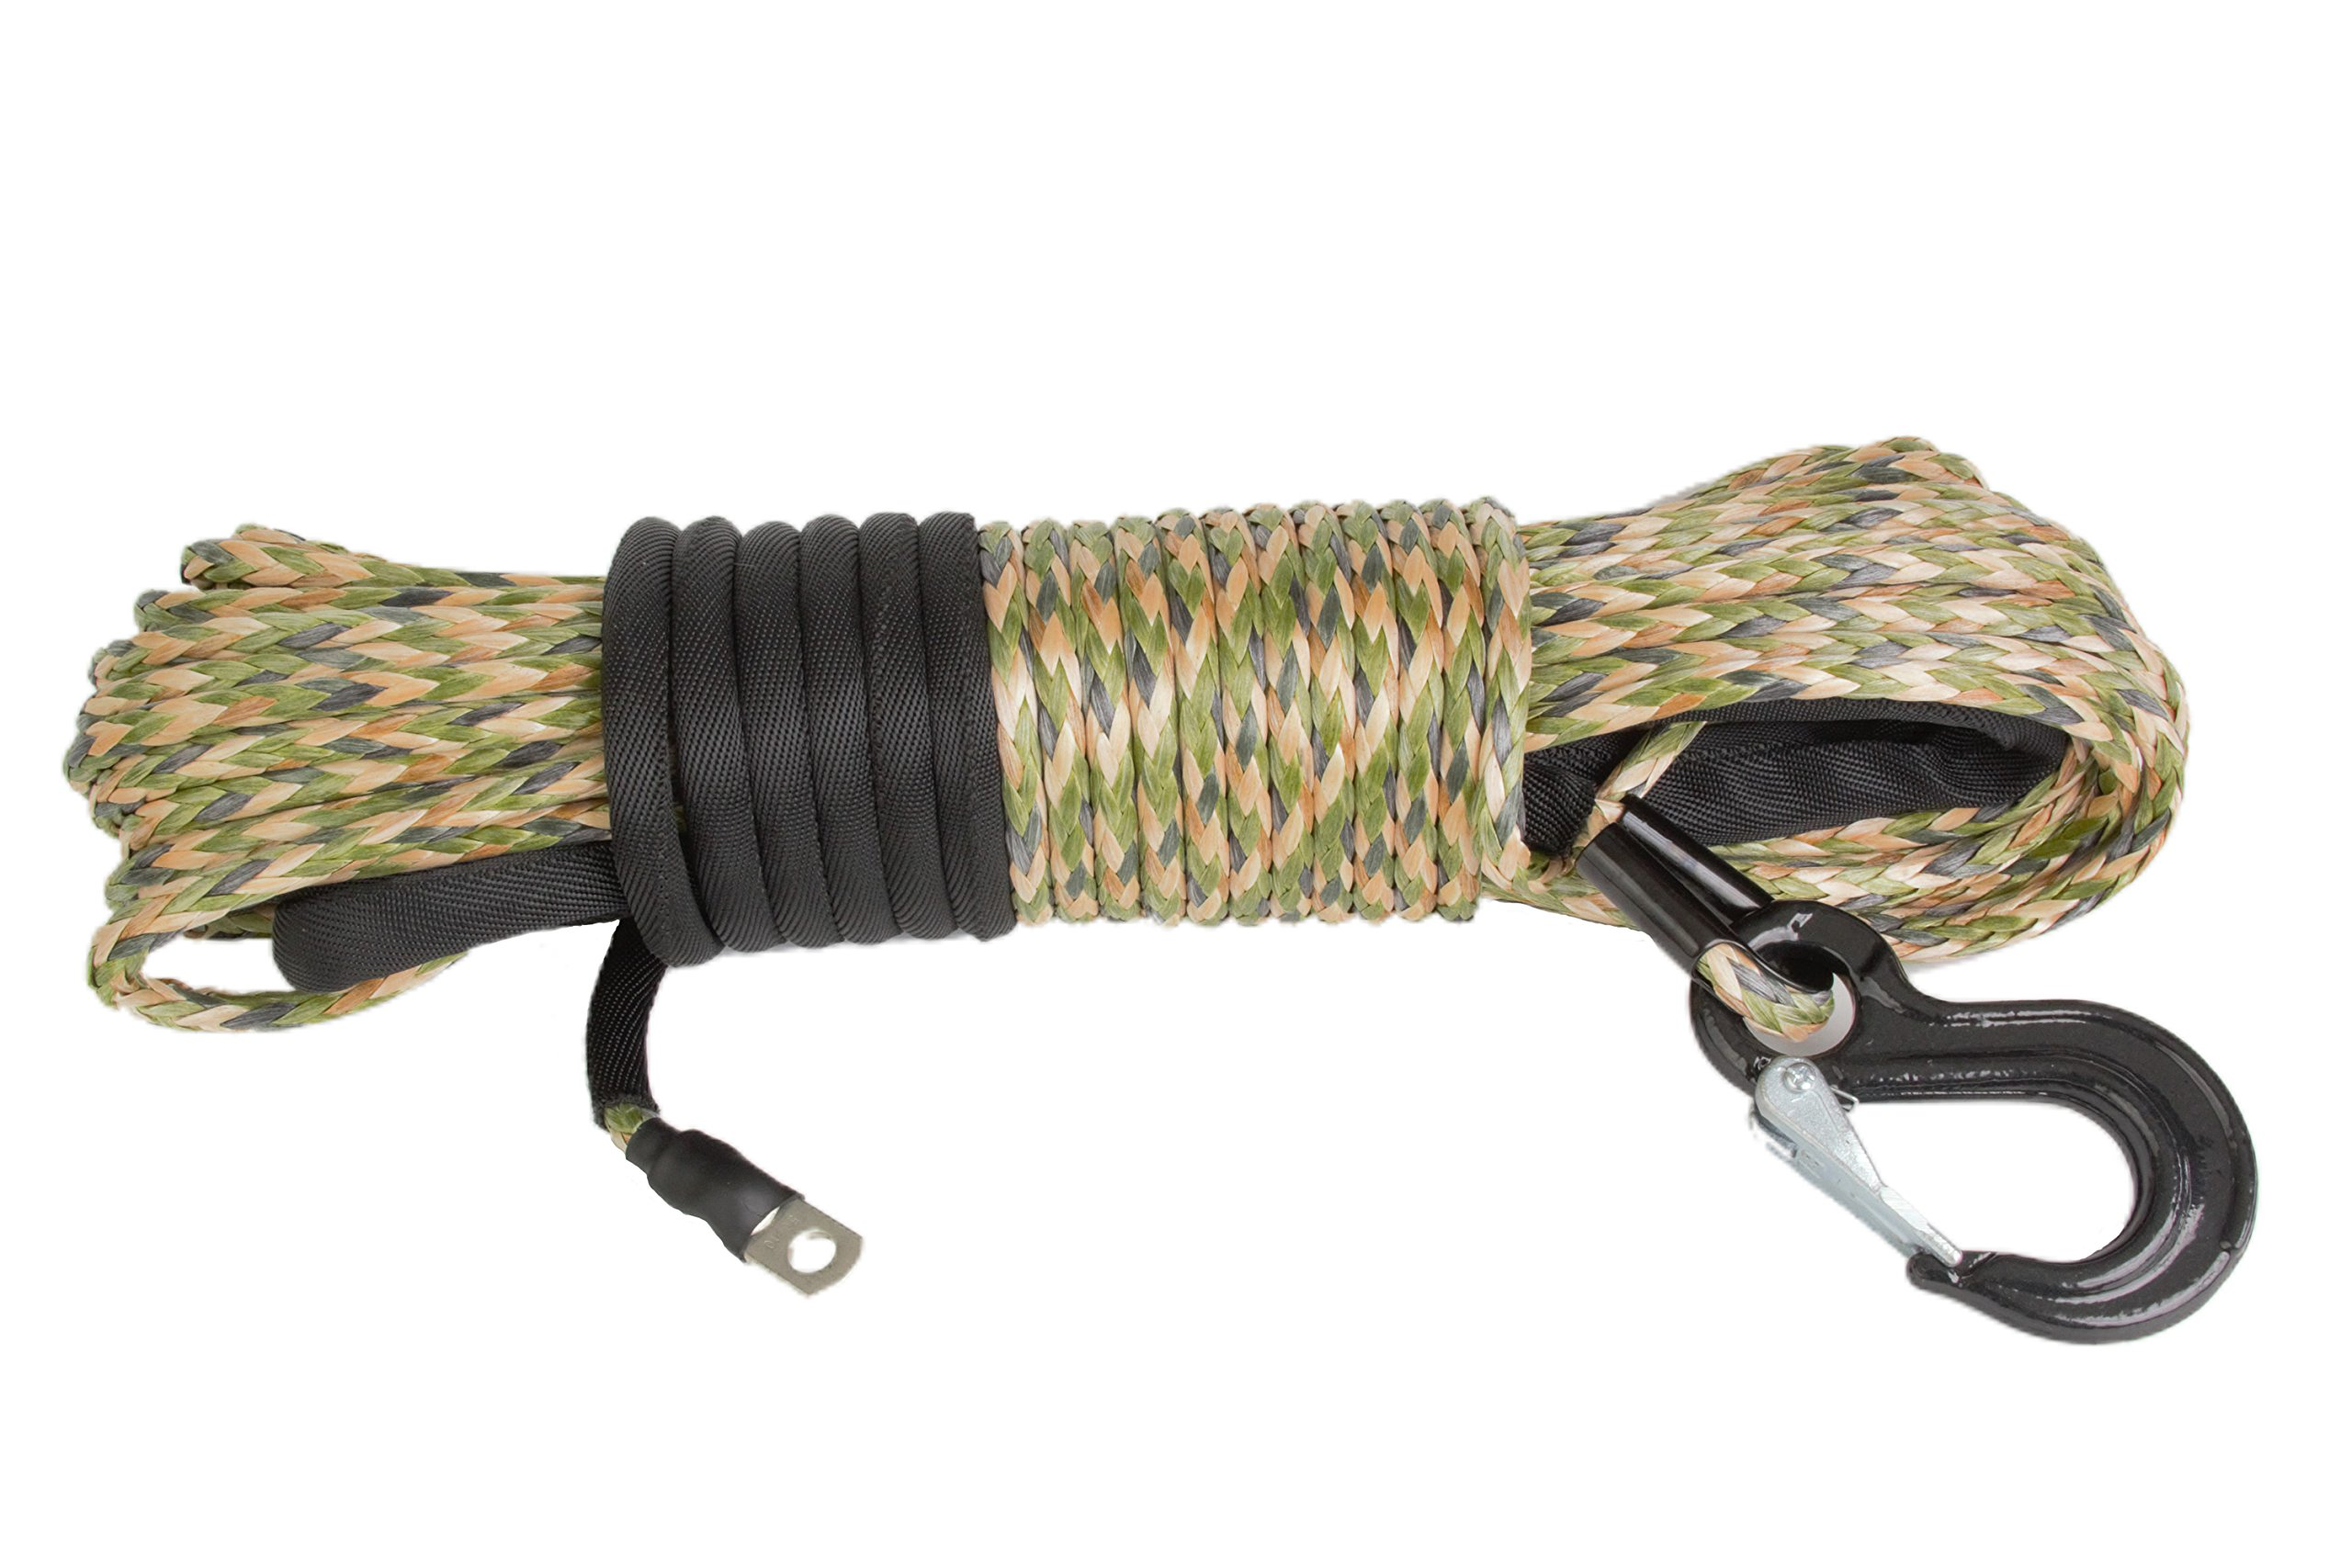 California Cordage 3/16'' x 50' Camo DynaTech UHMWPE Winch Rope with G80 Forged Hook